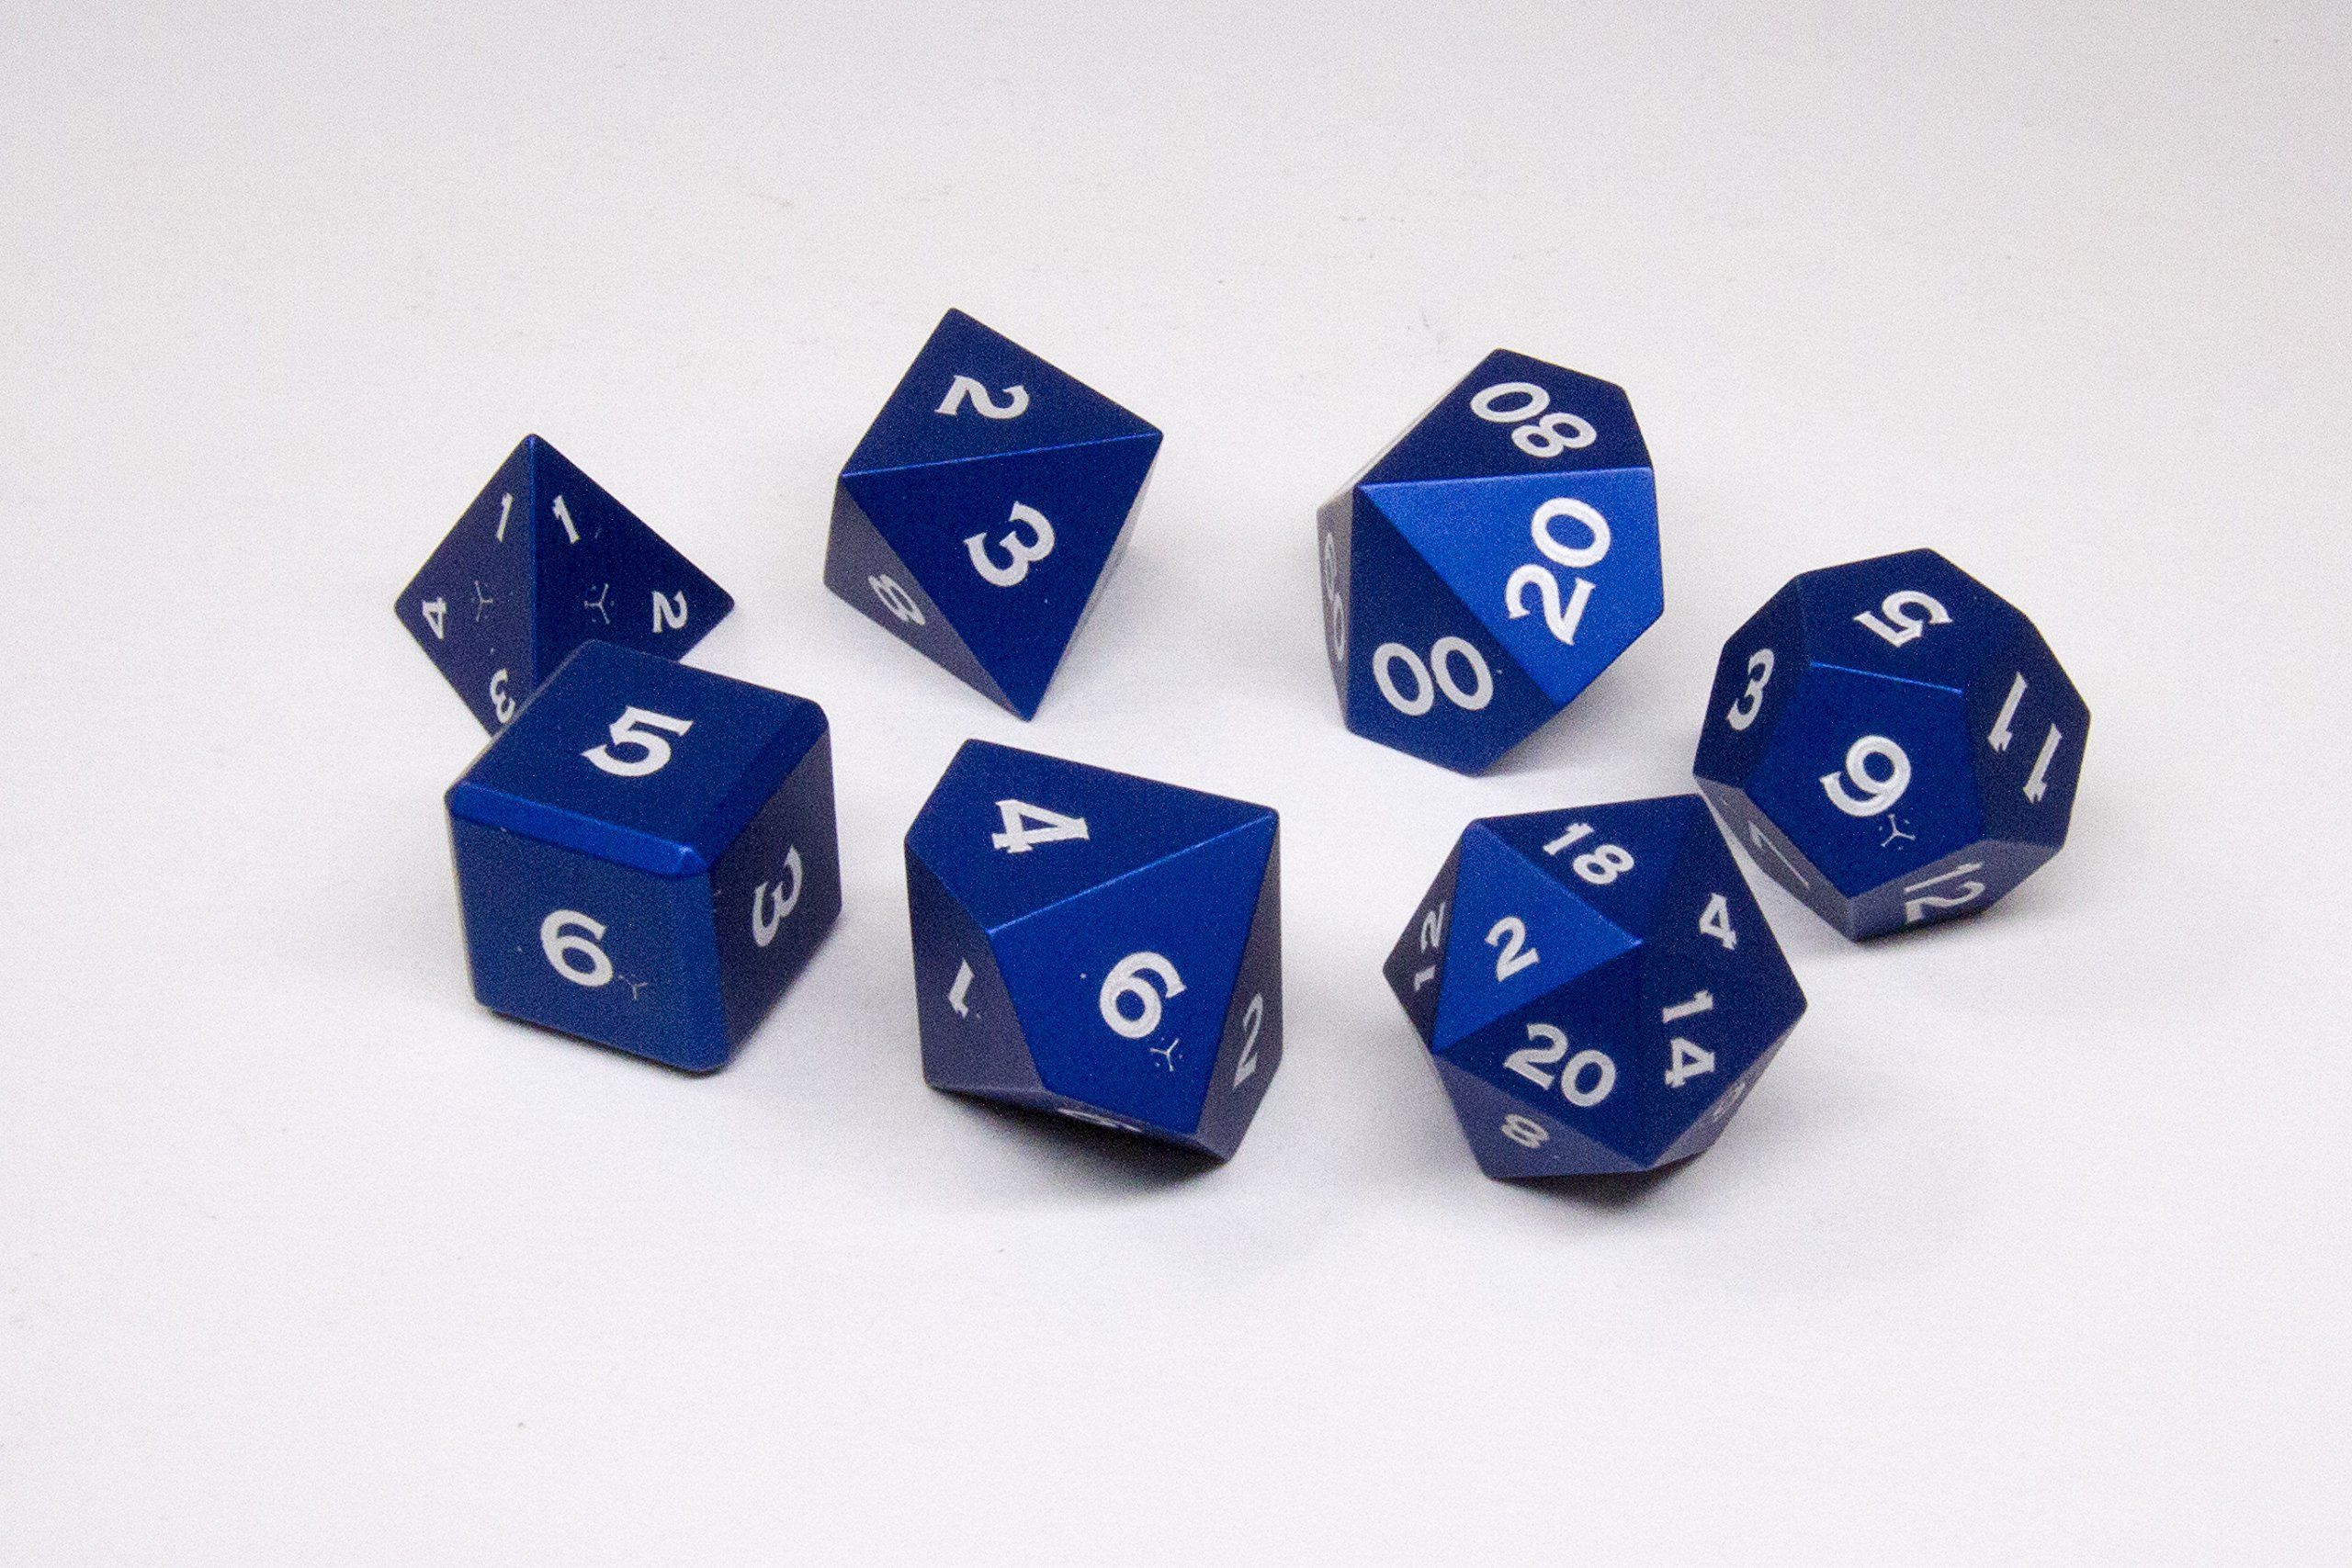 Gravity Dice 7 Metal Polyhedral Dice Set - Anodized Aluminum - World's Most Precise Gaming Dice (Cobalt Blue) by Gravity Dice